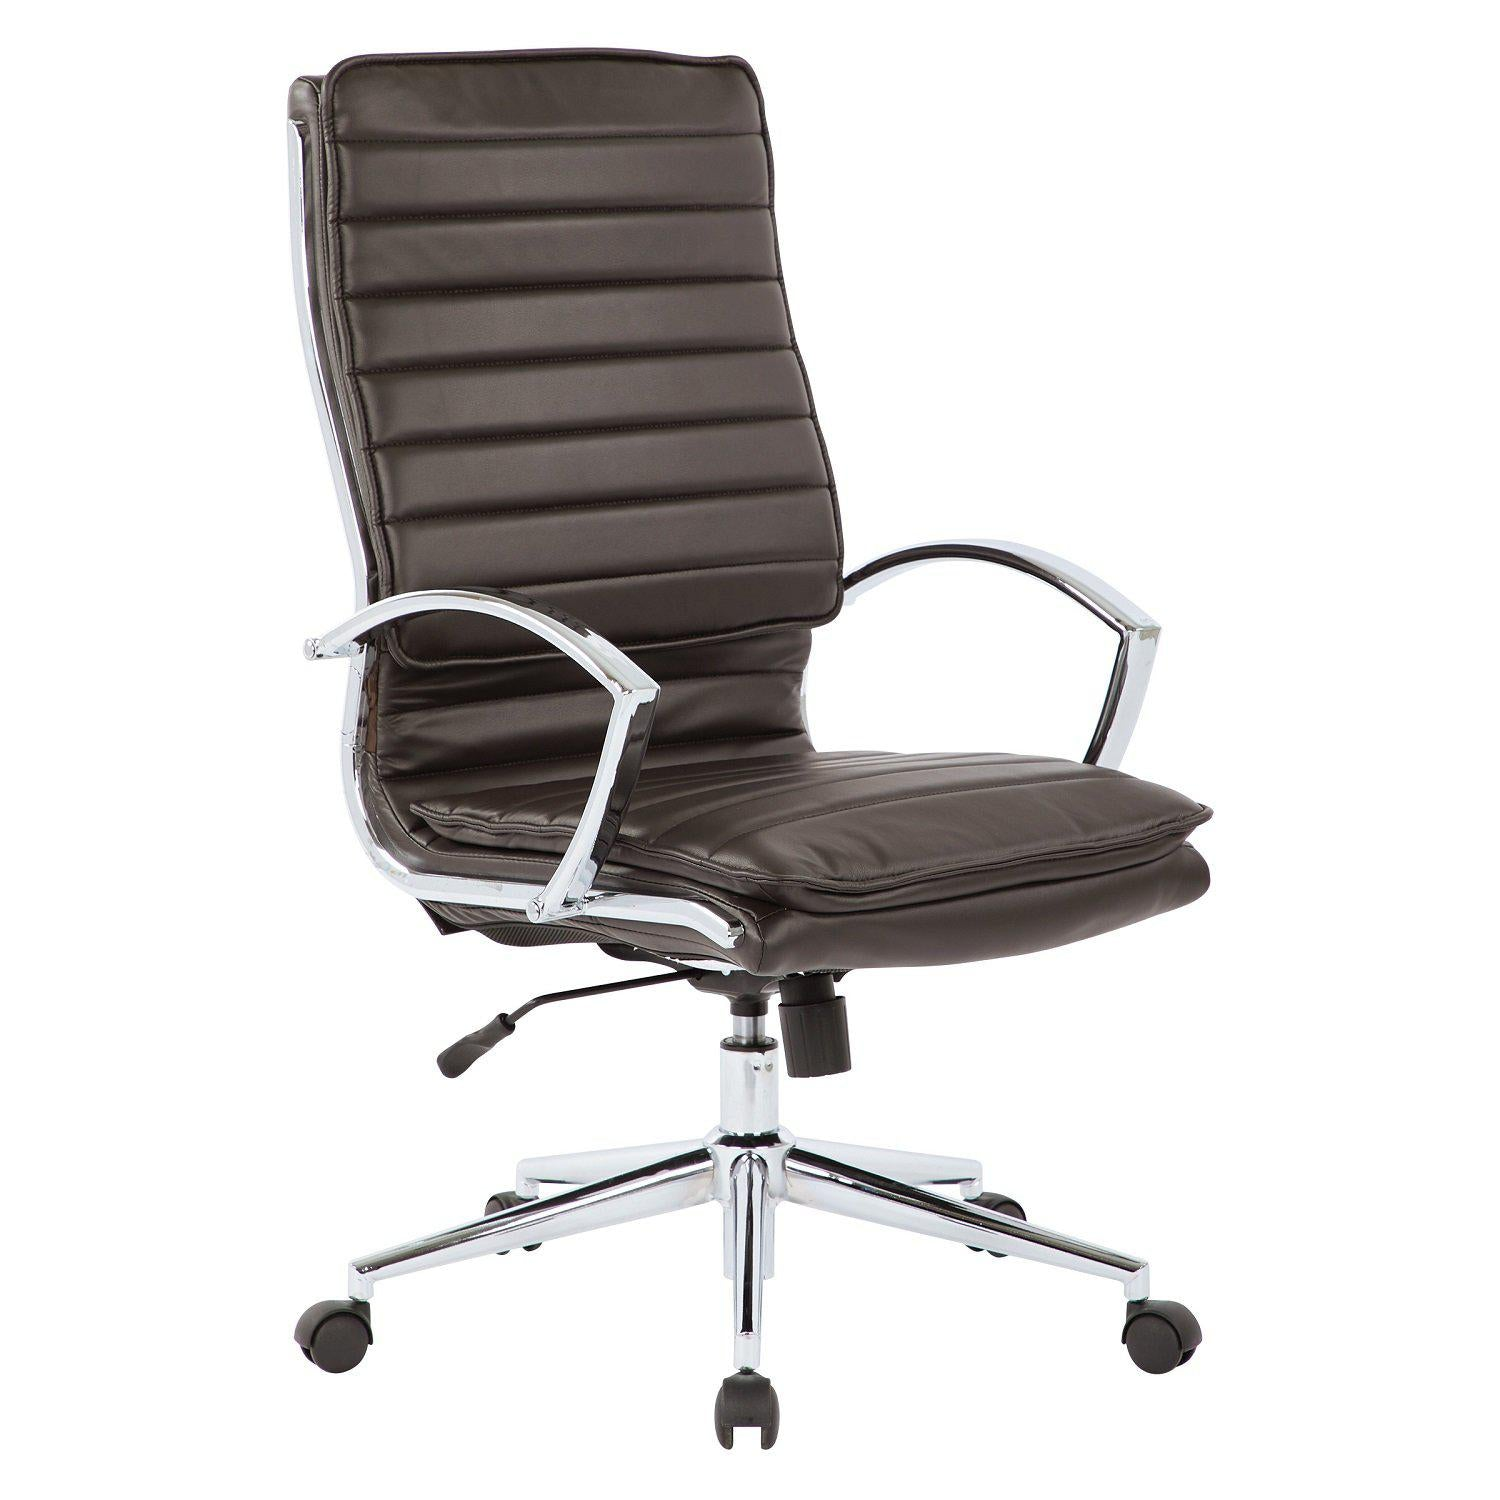 High Back Faux Leather Manager's Chair with Chrome Arms & Base